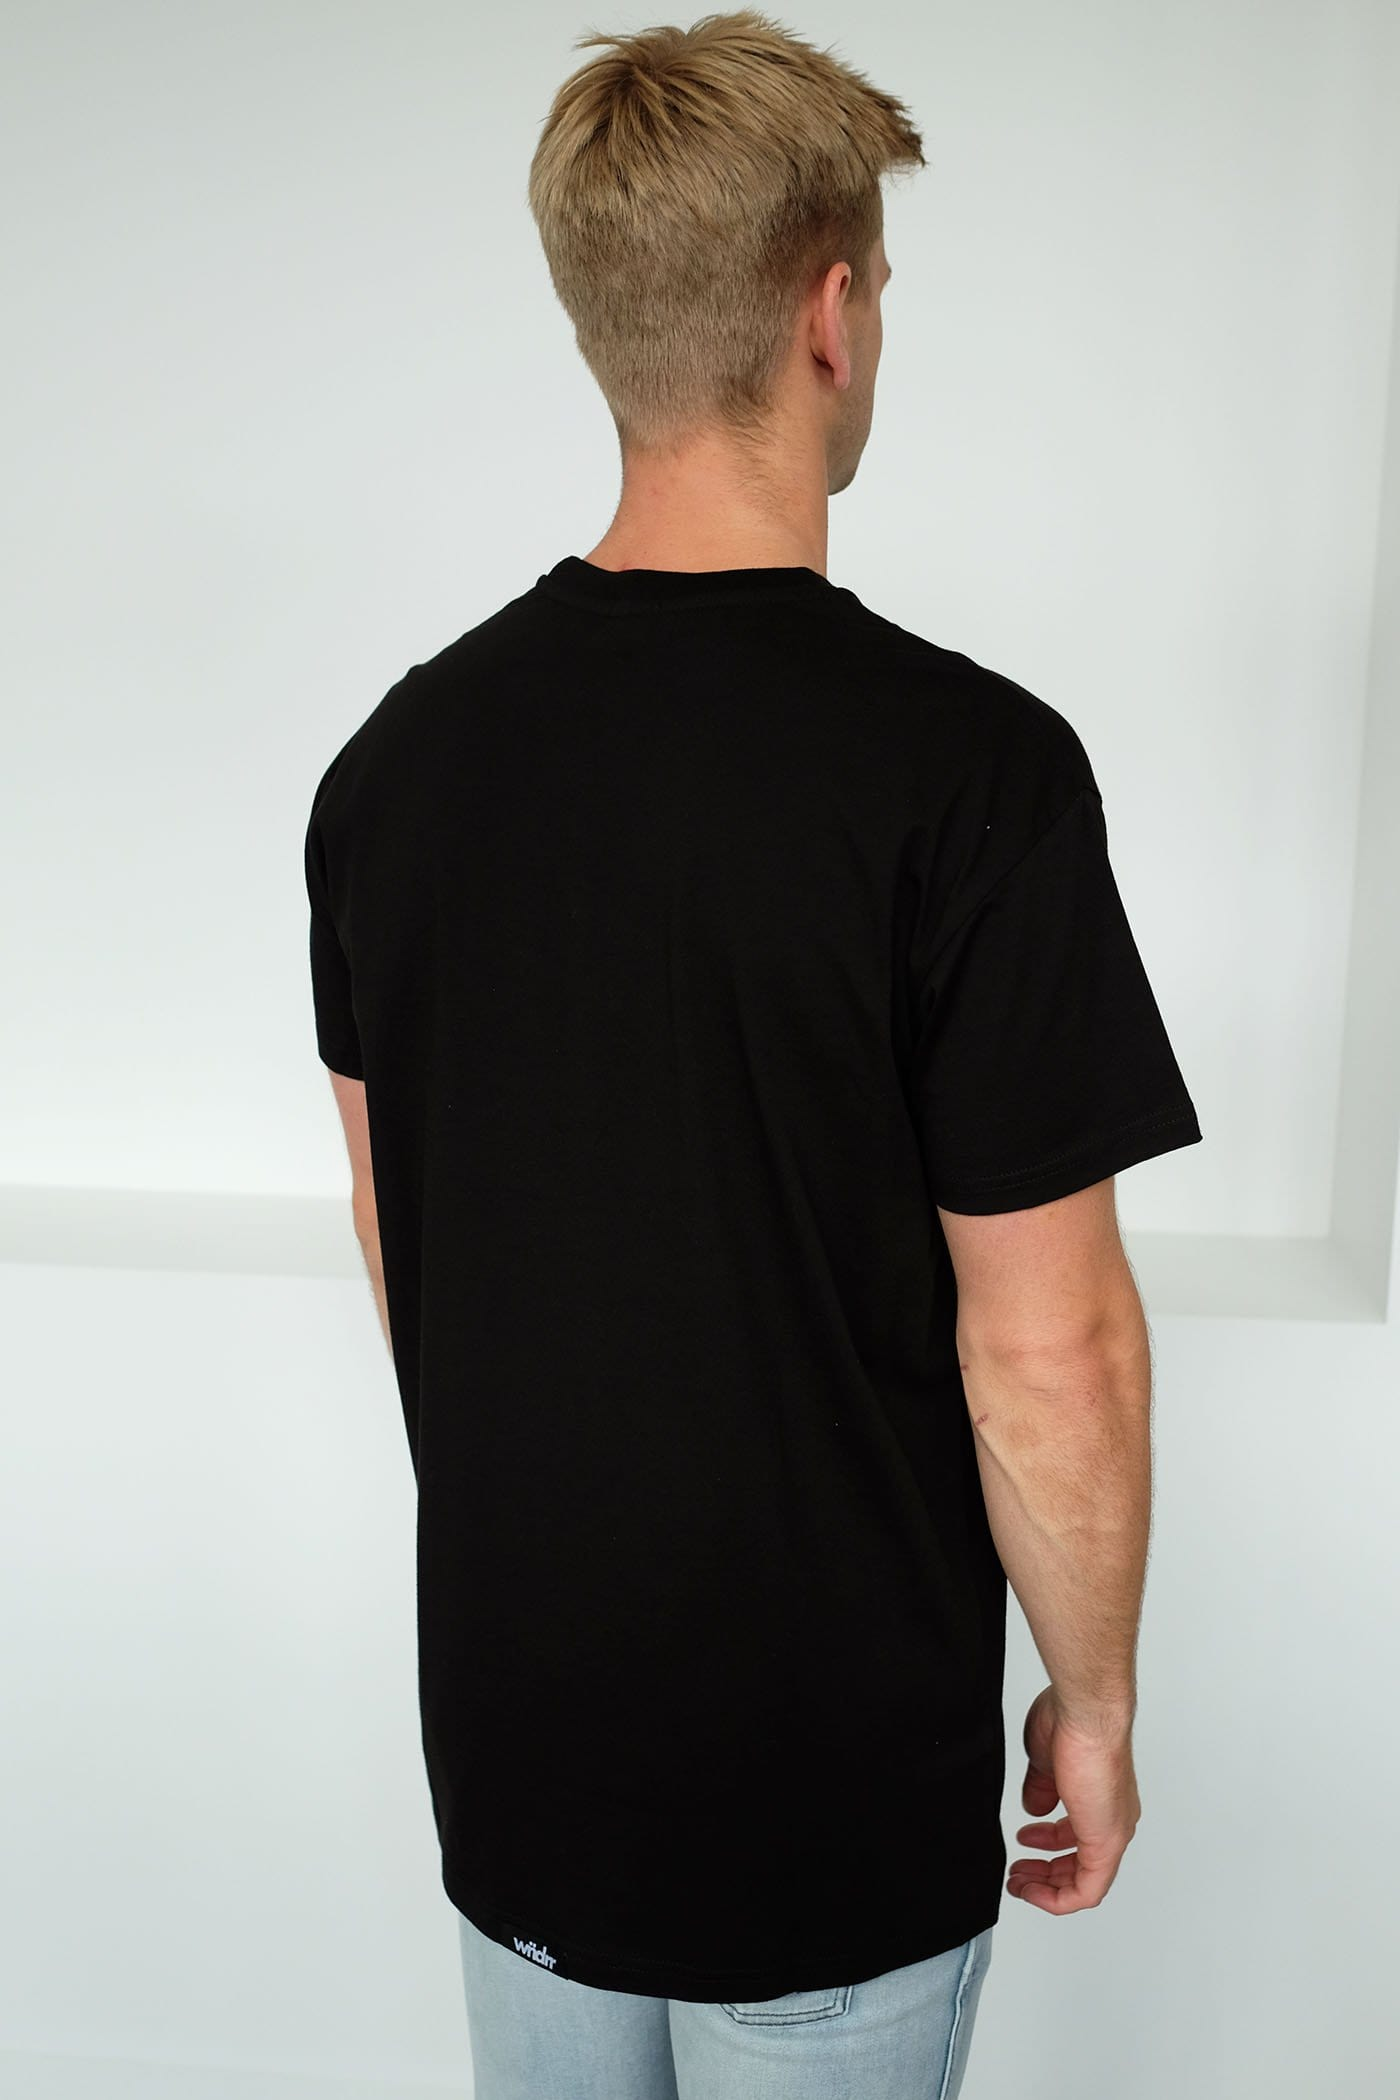 Medley Custom Fit Tee Black